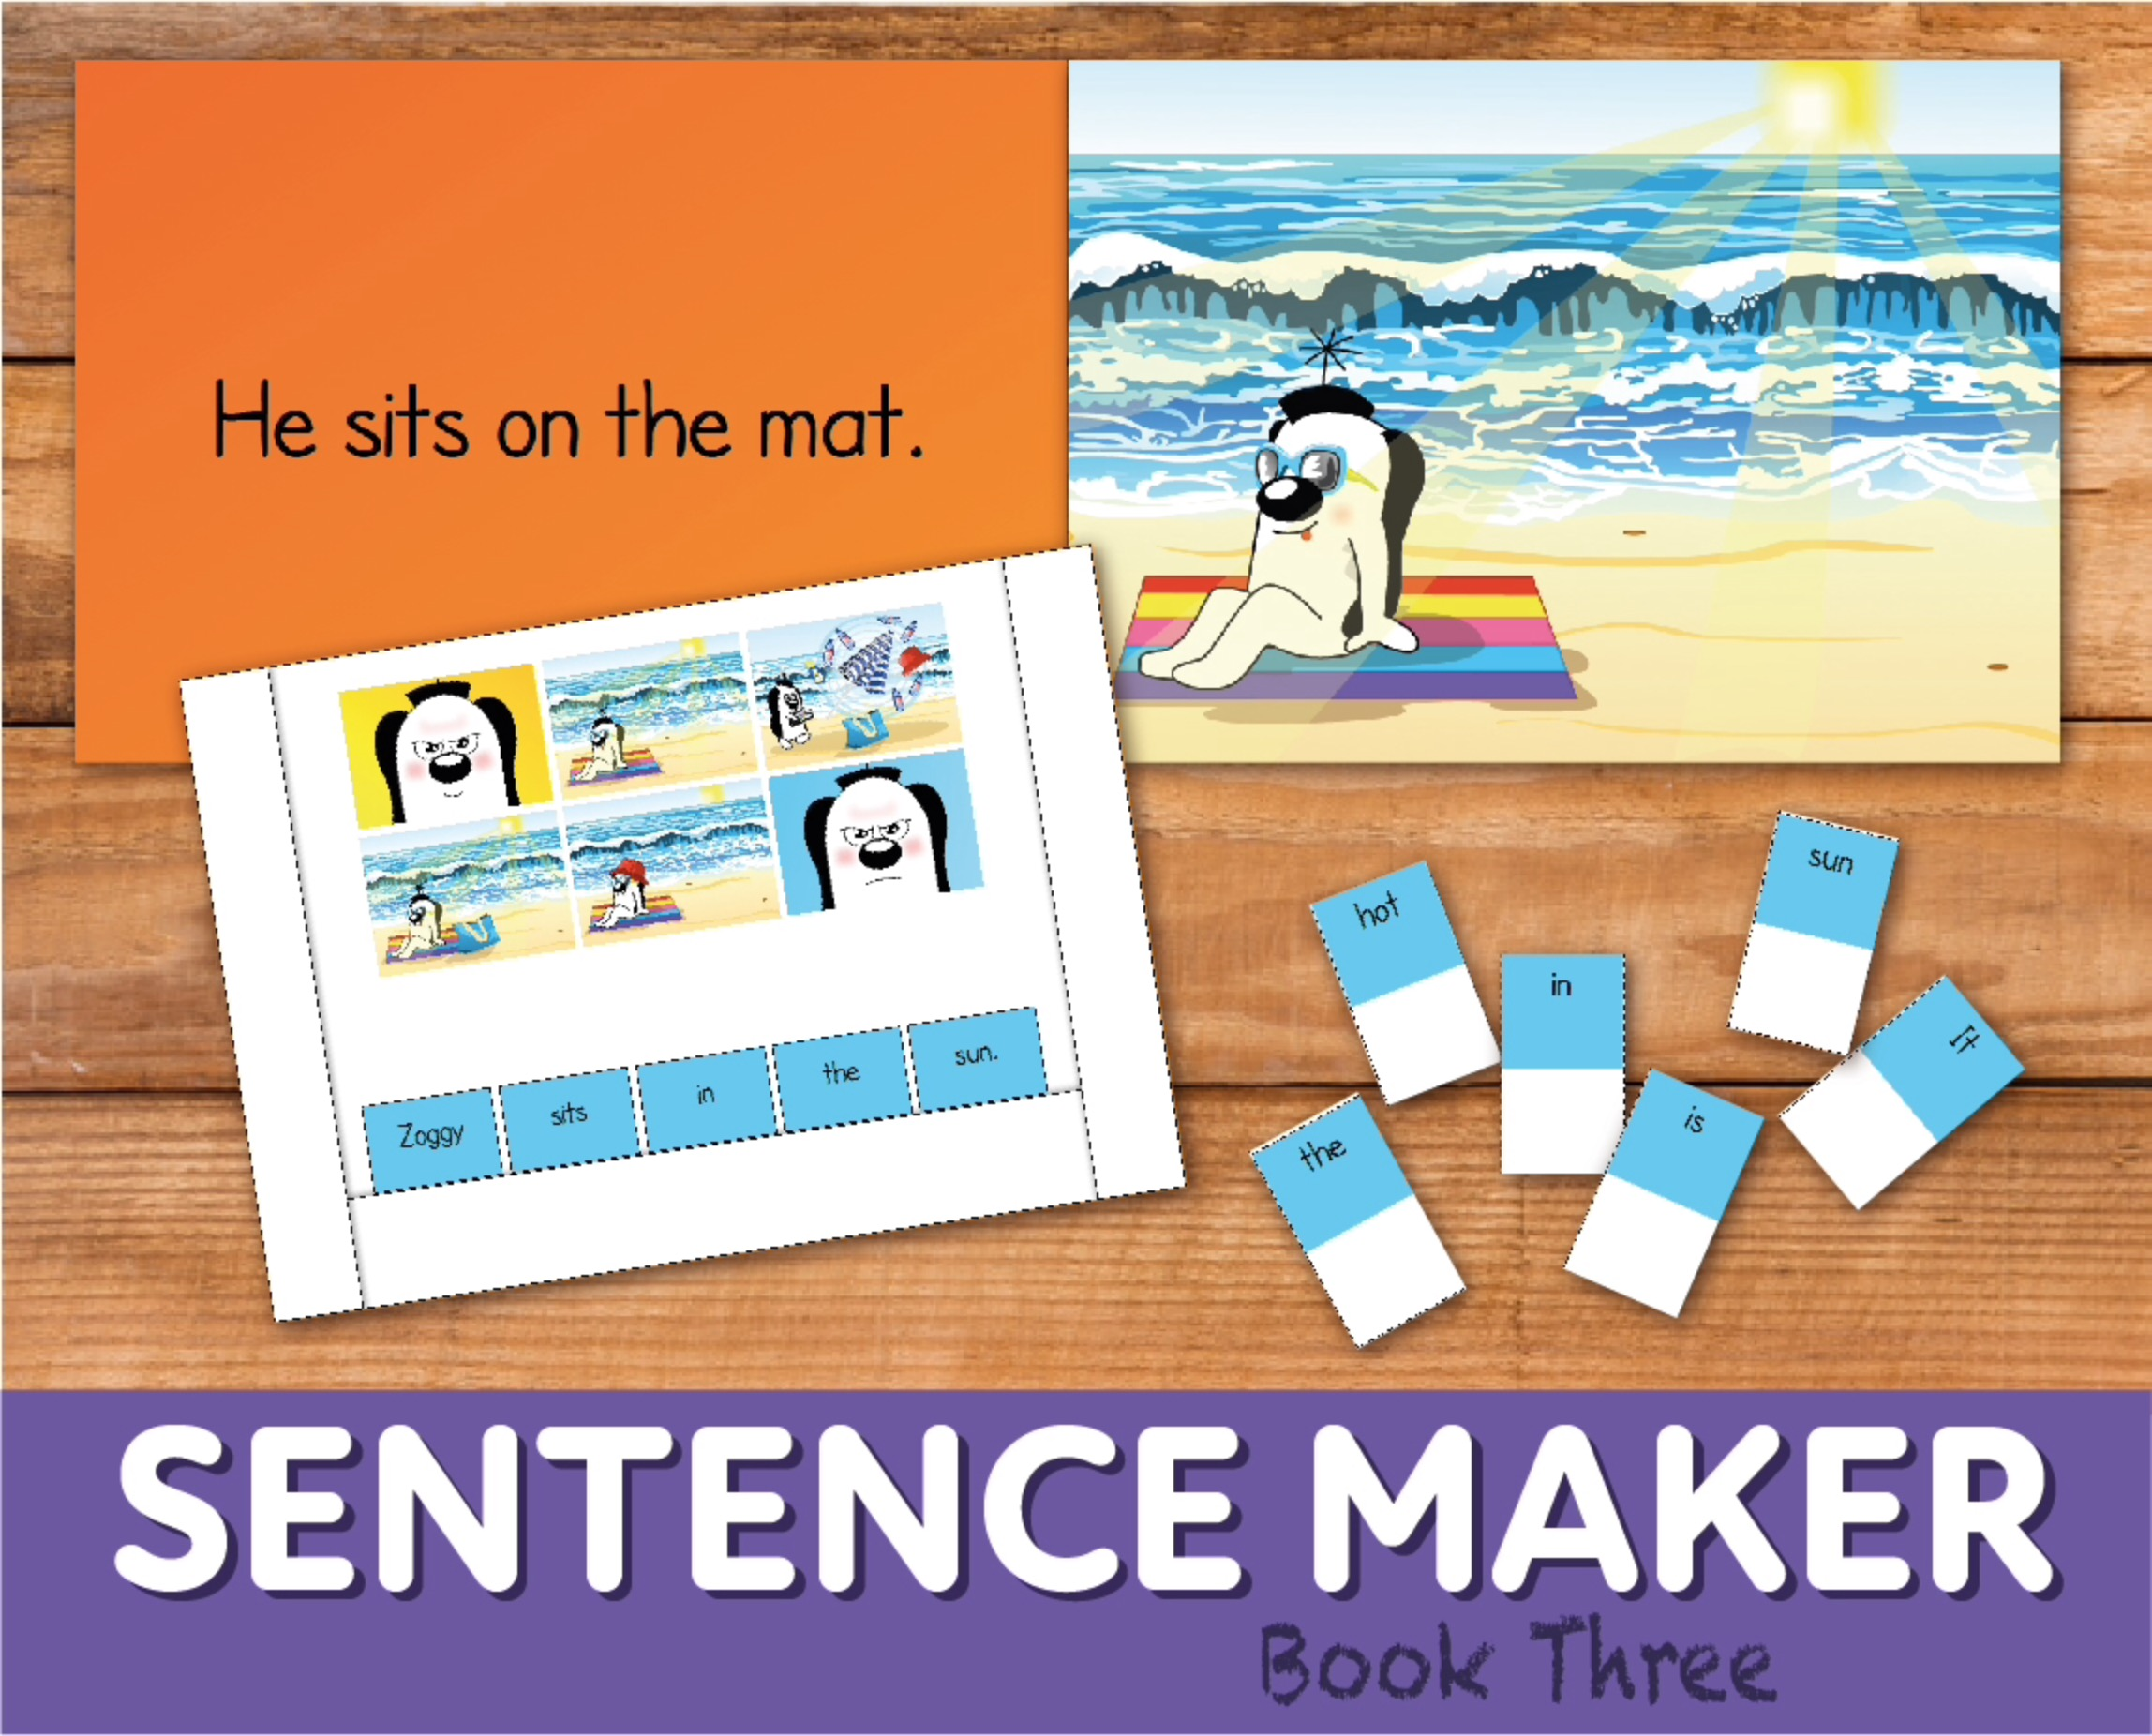 Make Sentences With The Sentence Maker: Book 3